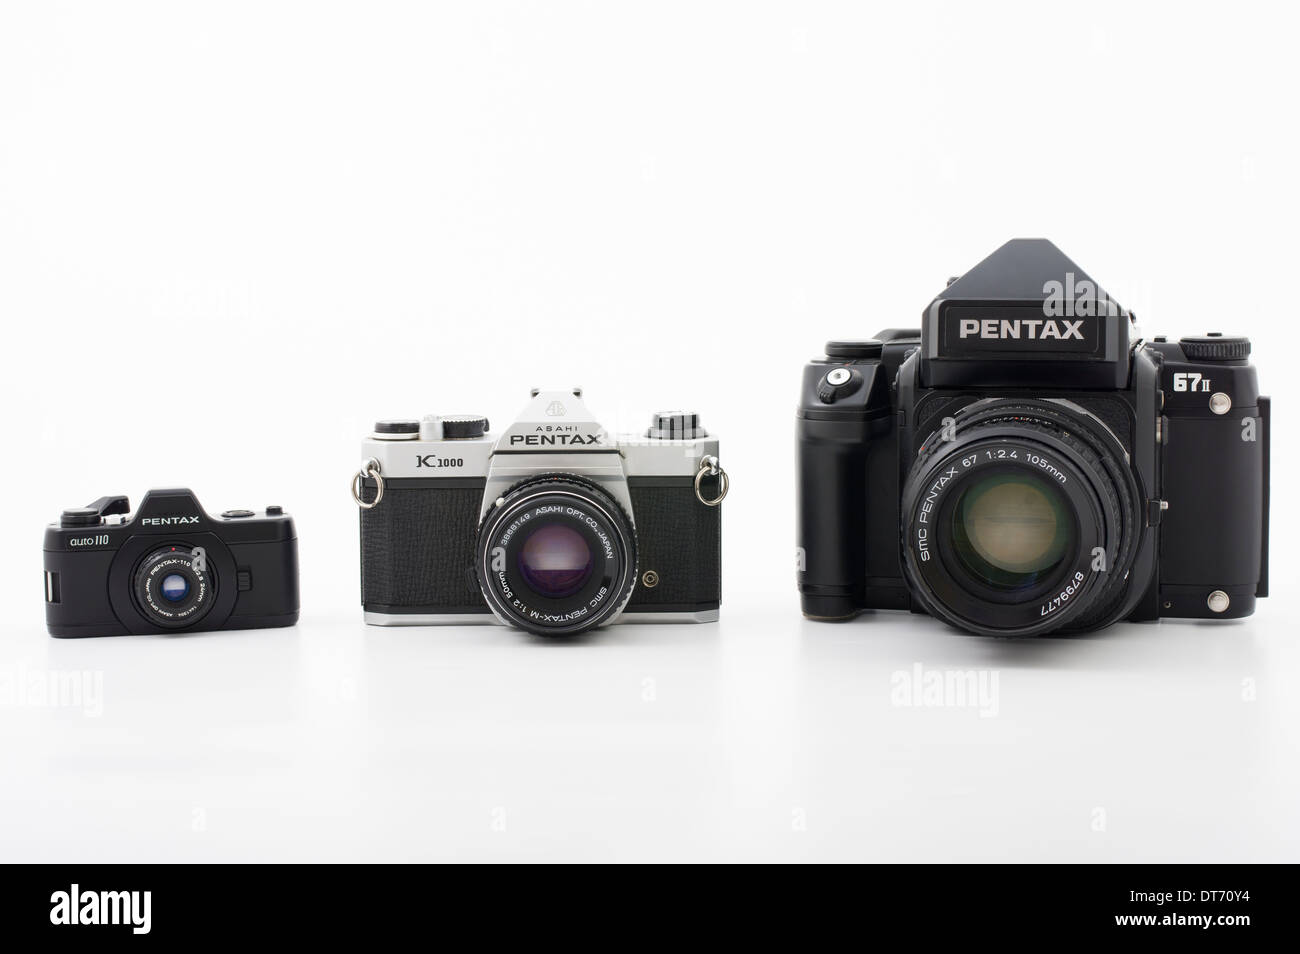 Pentax film SLR cameras in different film formats. 67II medium format, K1000 35mm, Auto110 110 film - Stock Image